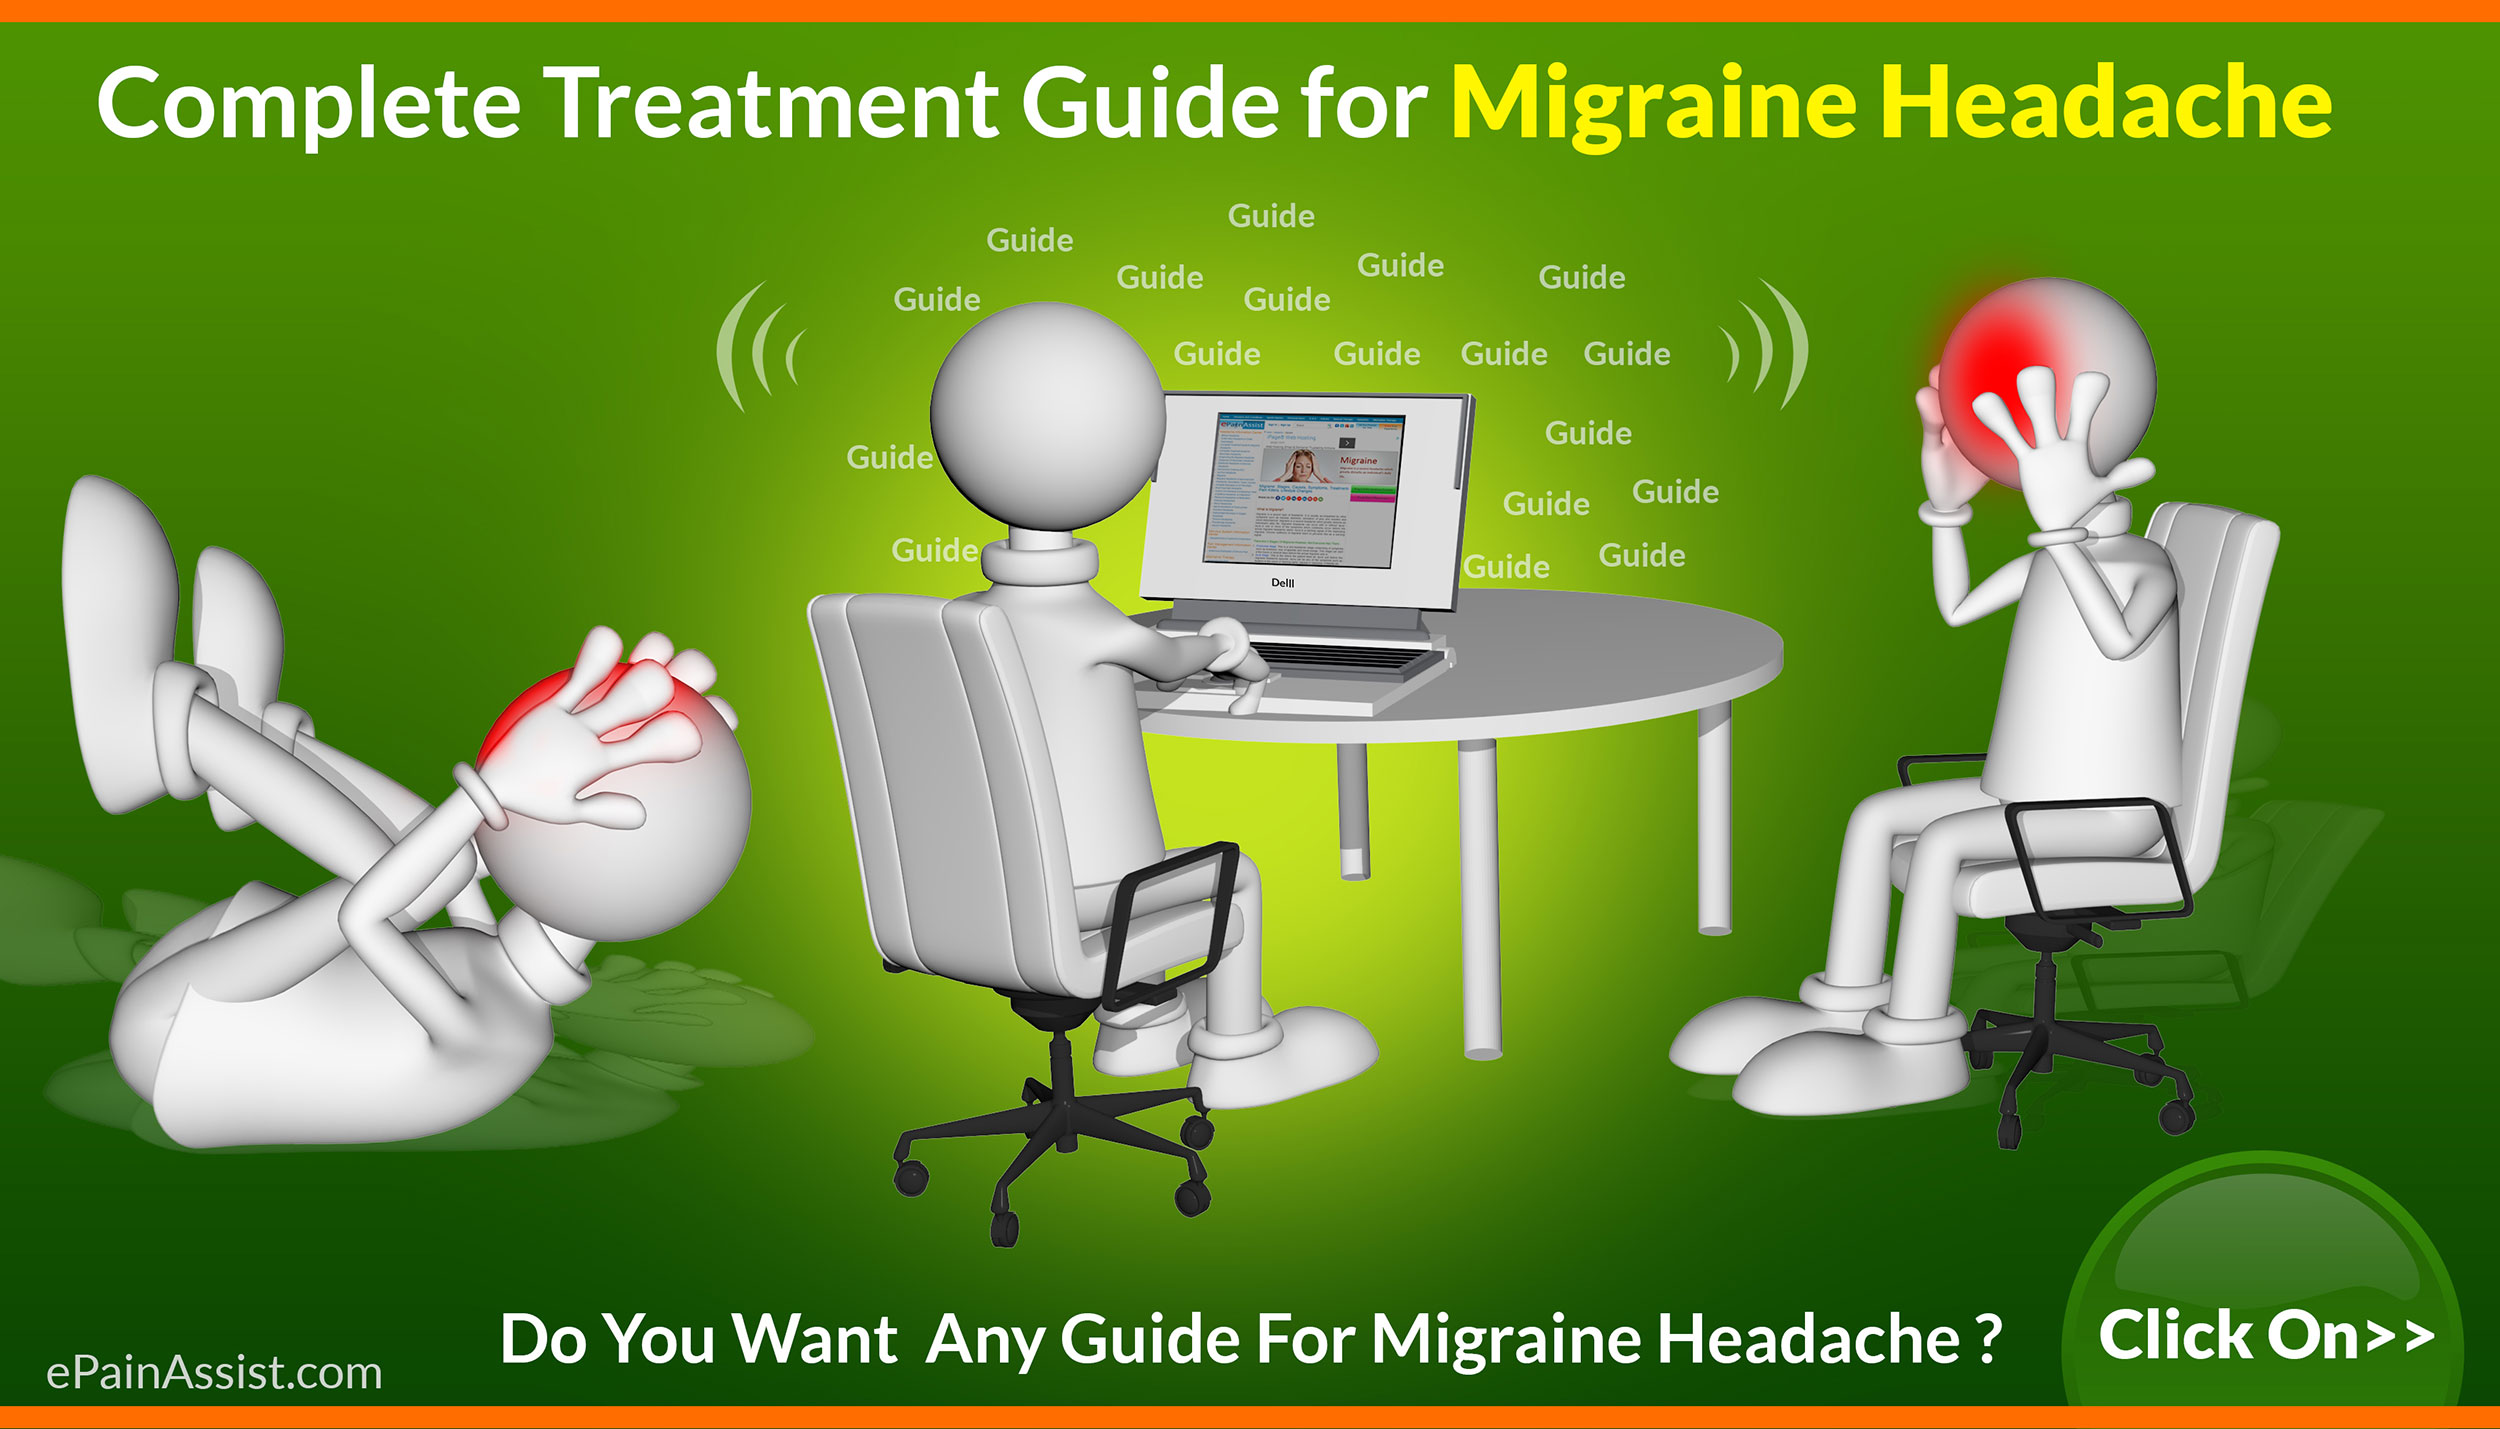 Complete Treatment Guide for Migraine Headache: